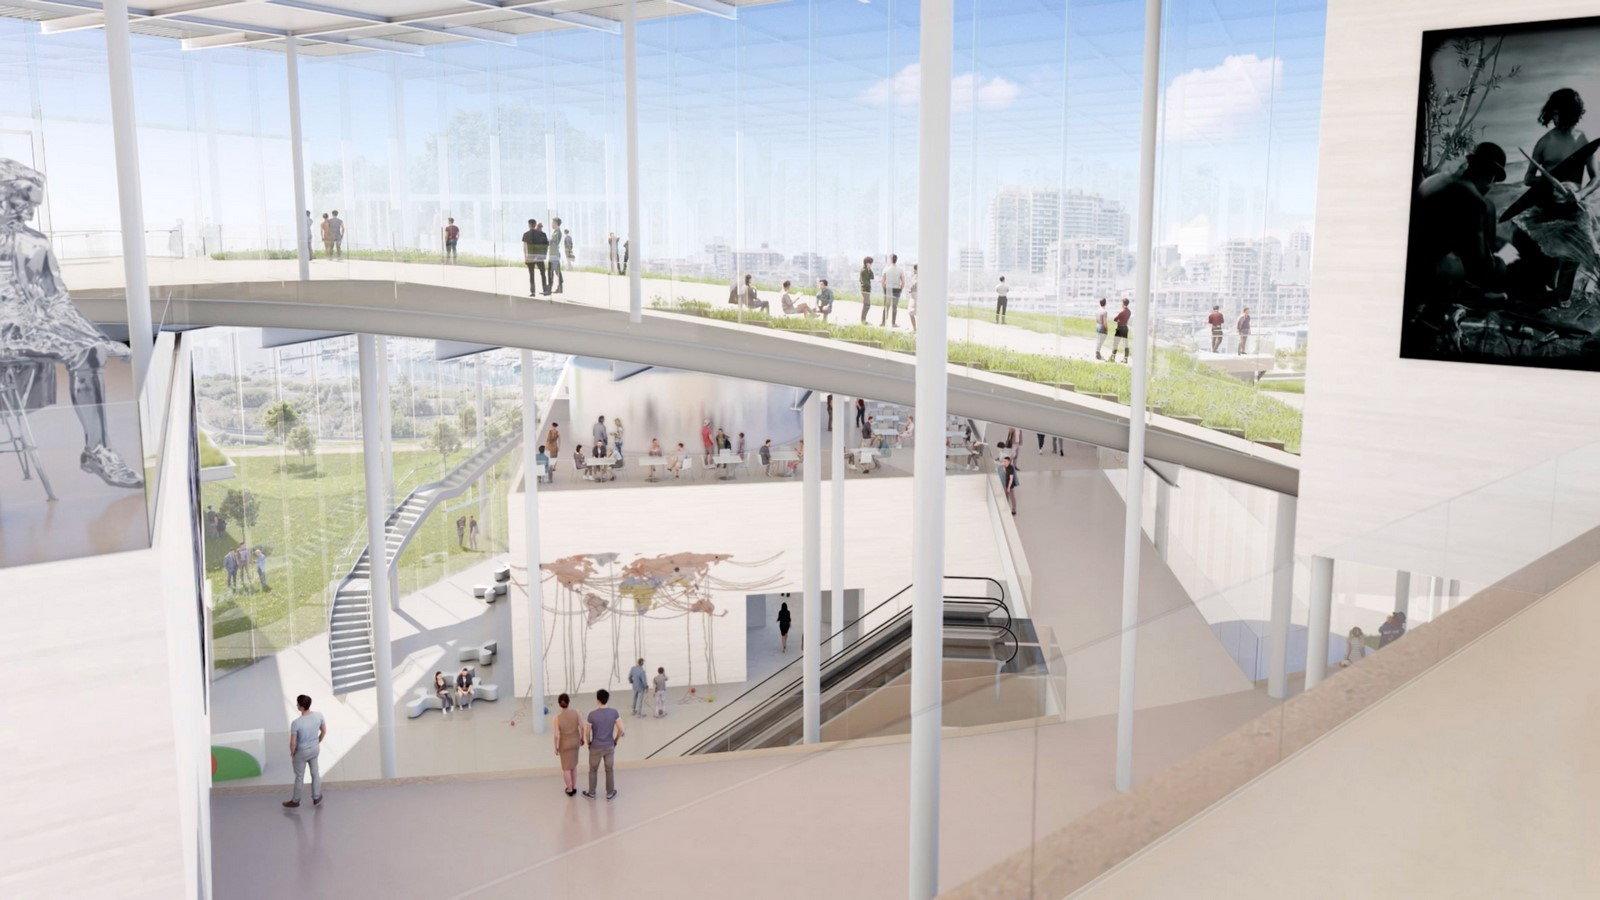 New Images For Art Gallery Of South Wales Expansion In Sydney revealed by SANAA - Sheet3